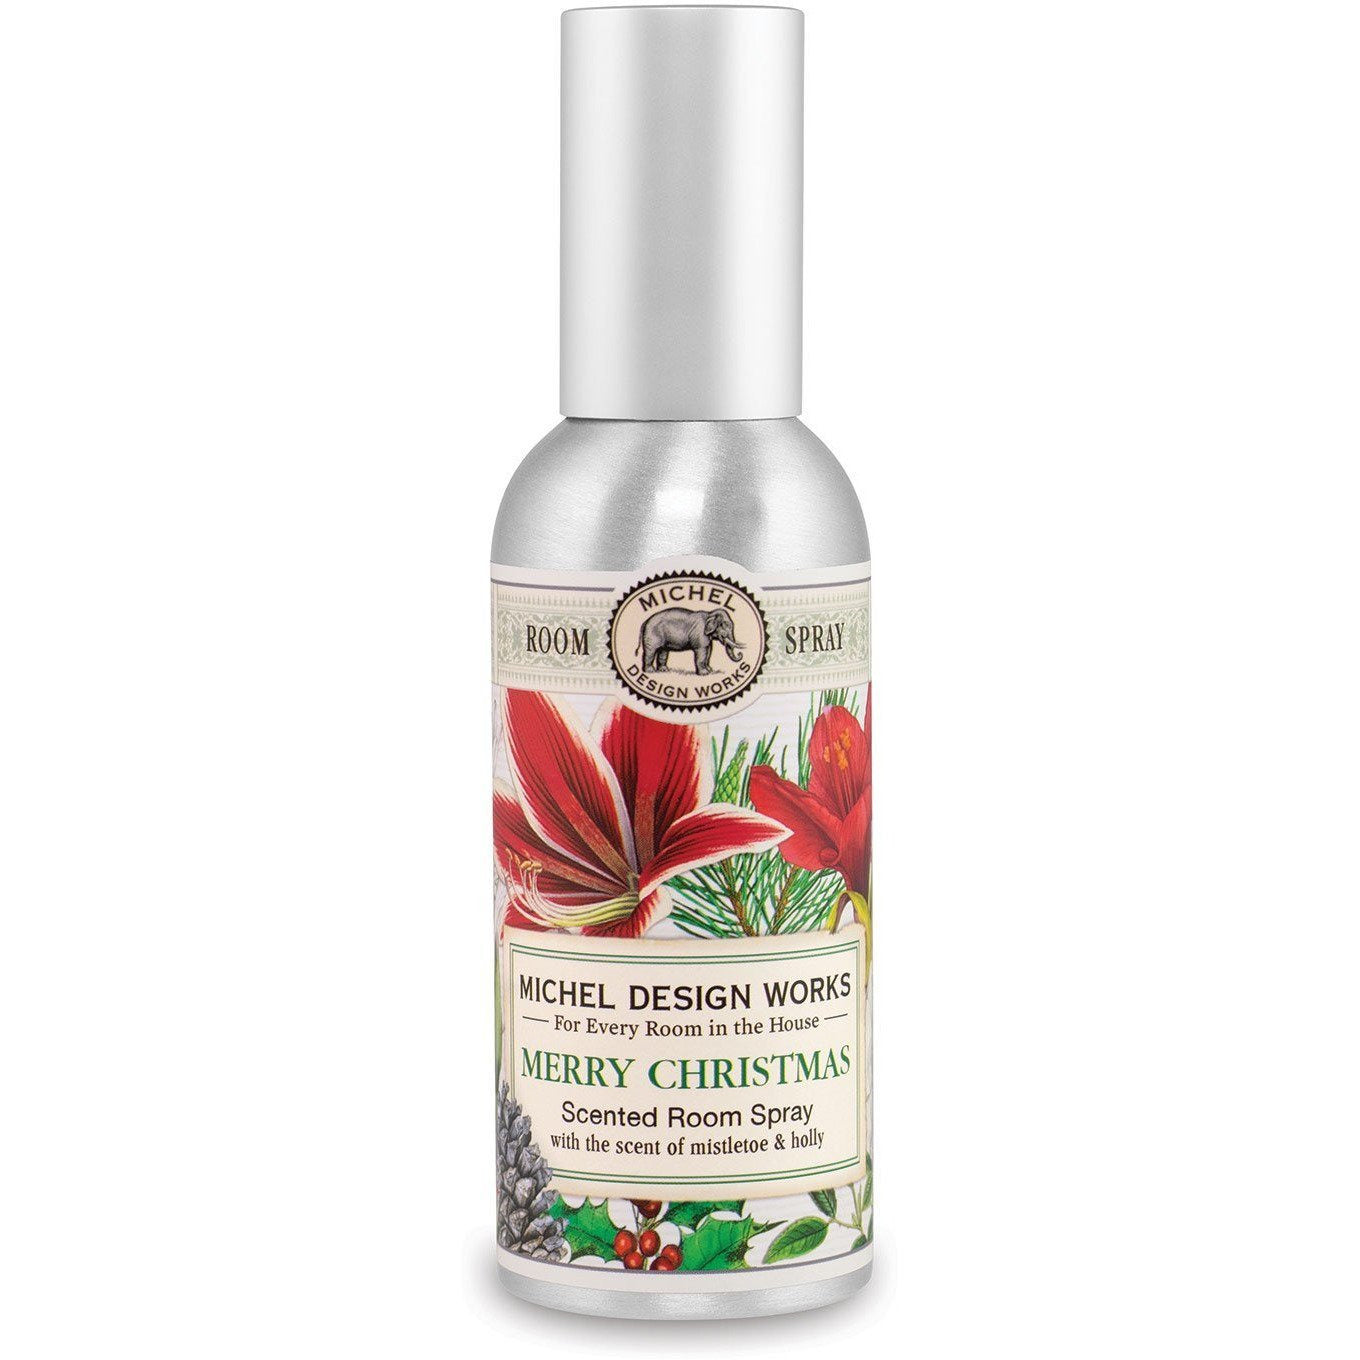 Merry Christmas Room Spray 3.4 oz